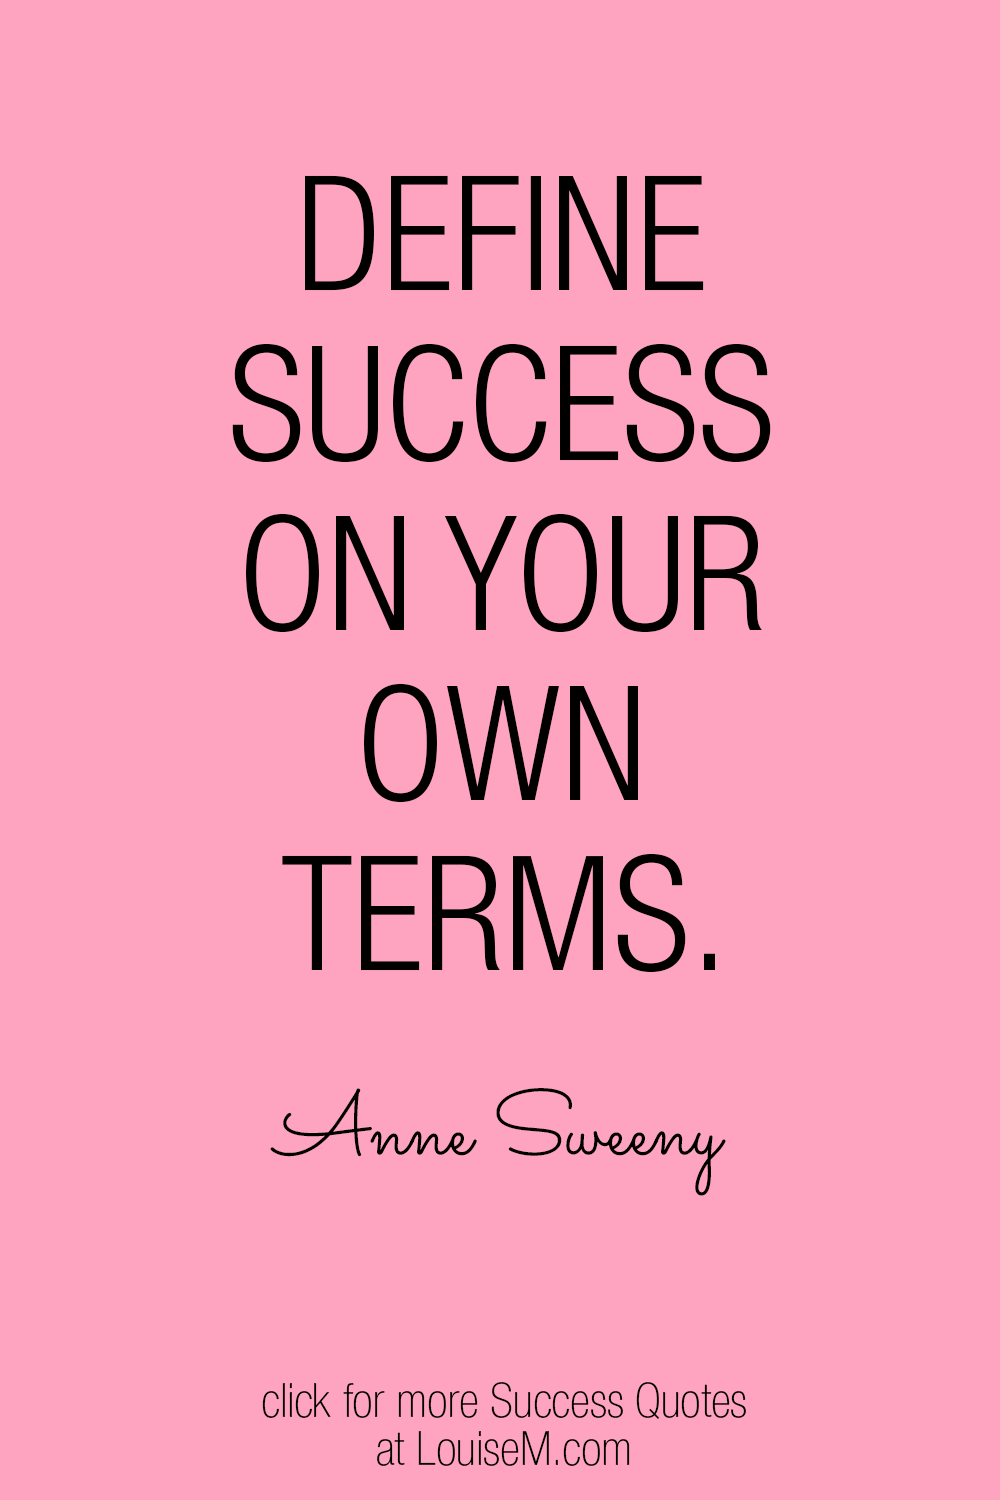 define success on your own terms quote graphic